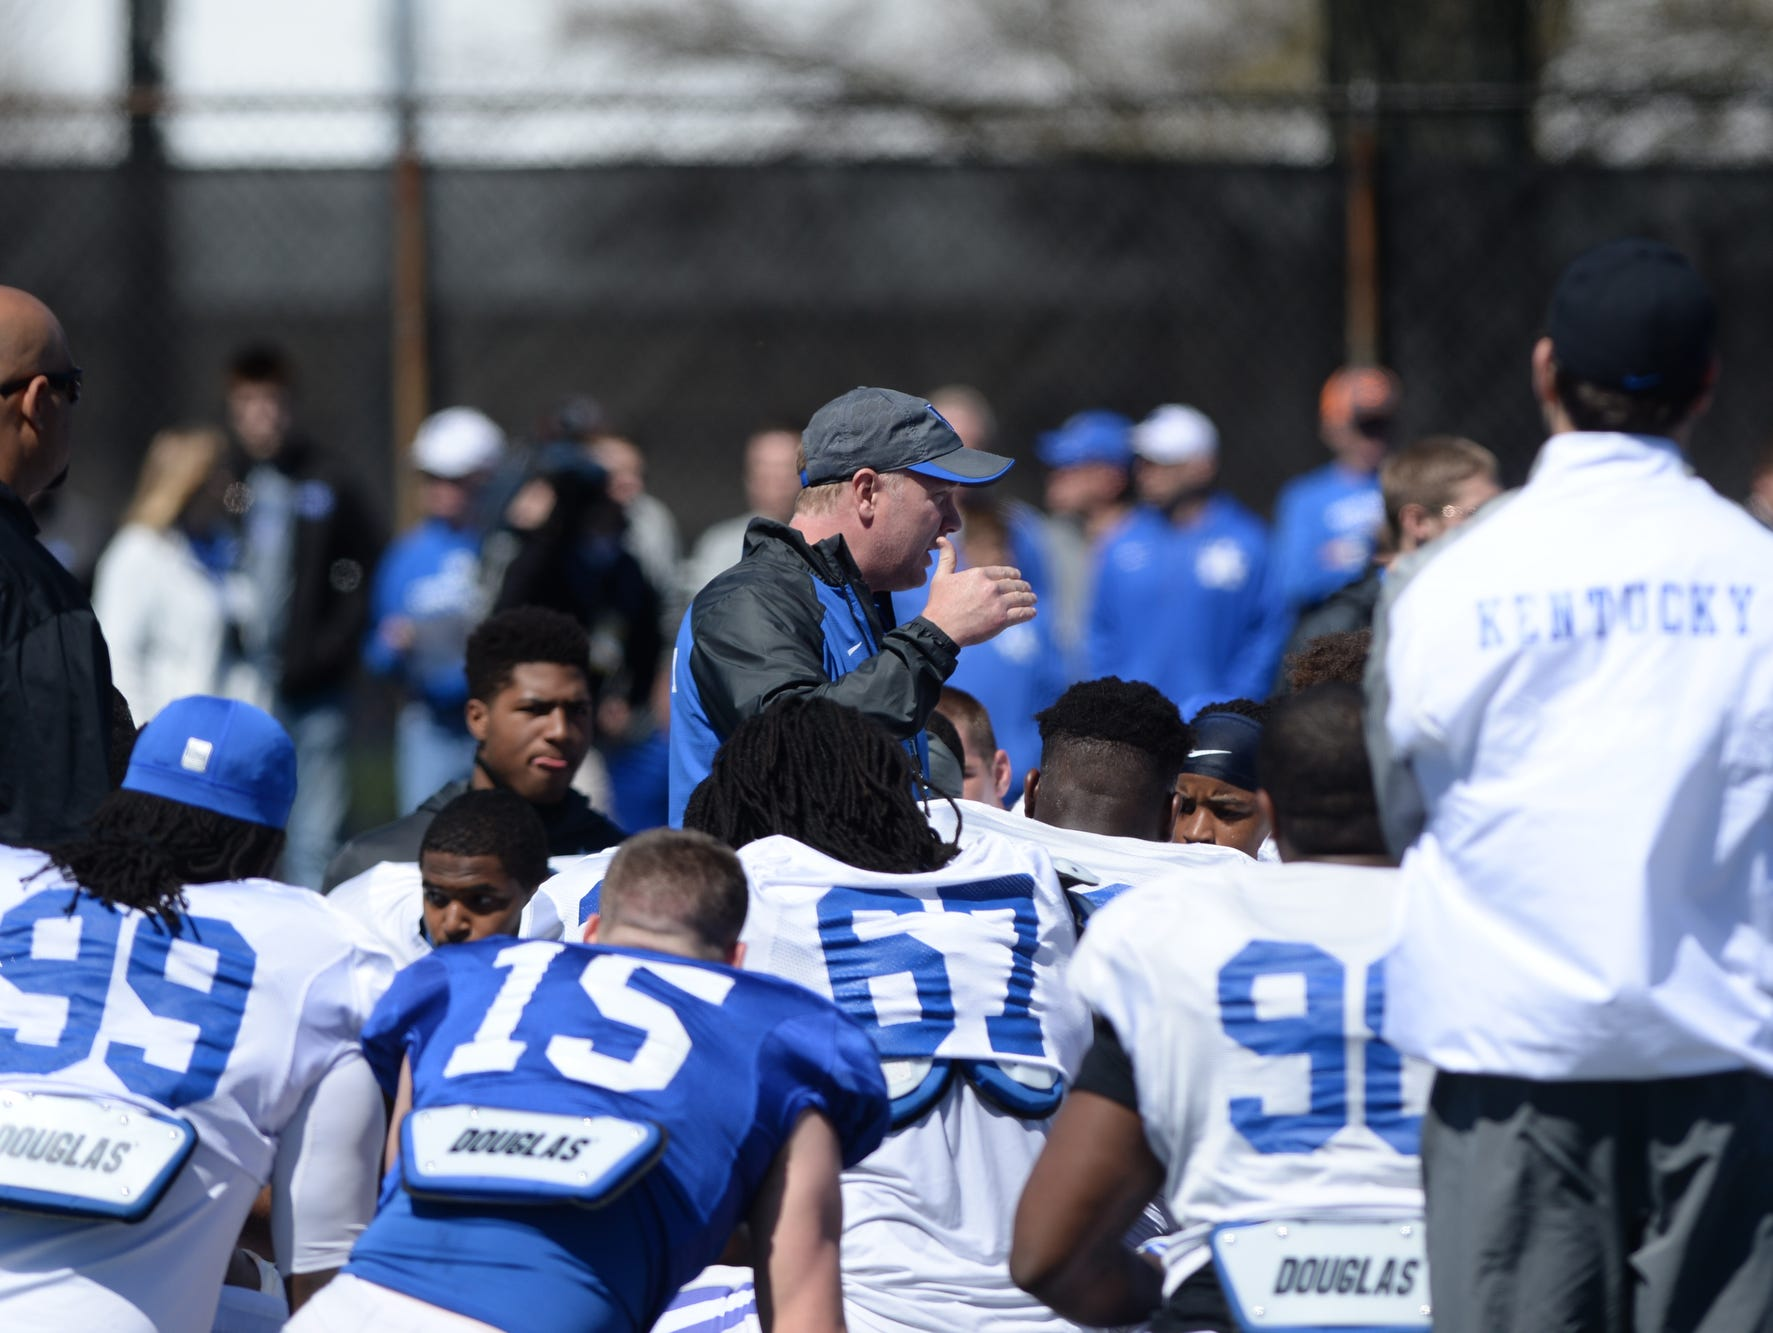 Kentucky head coach Mark Stoops addresses the team before the Kentucky football scrimmage on Saturday, April 11, 2015.